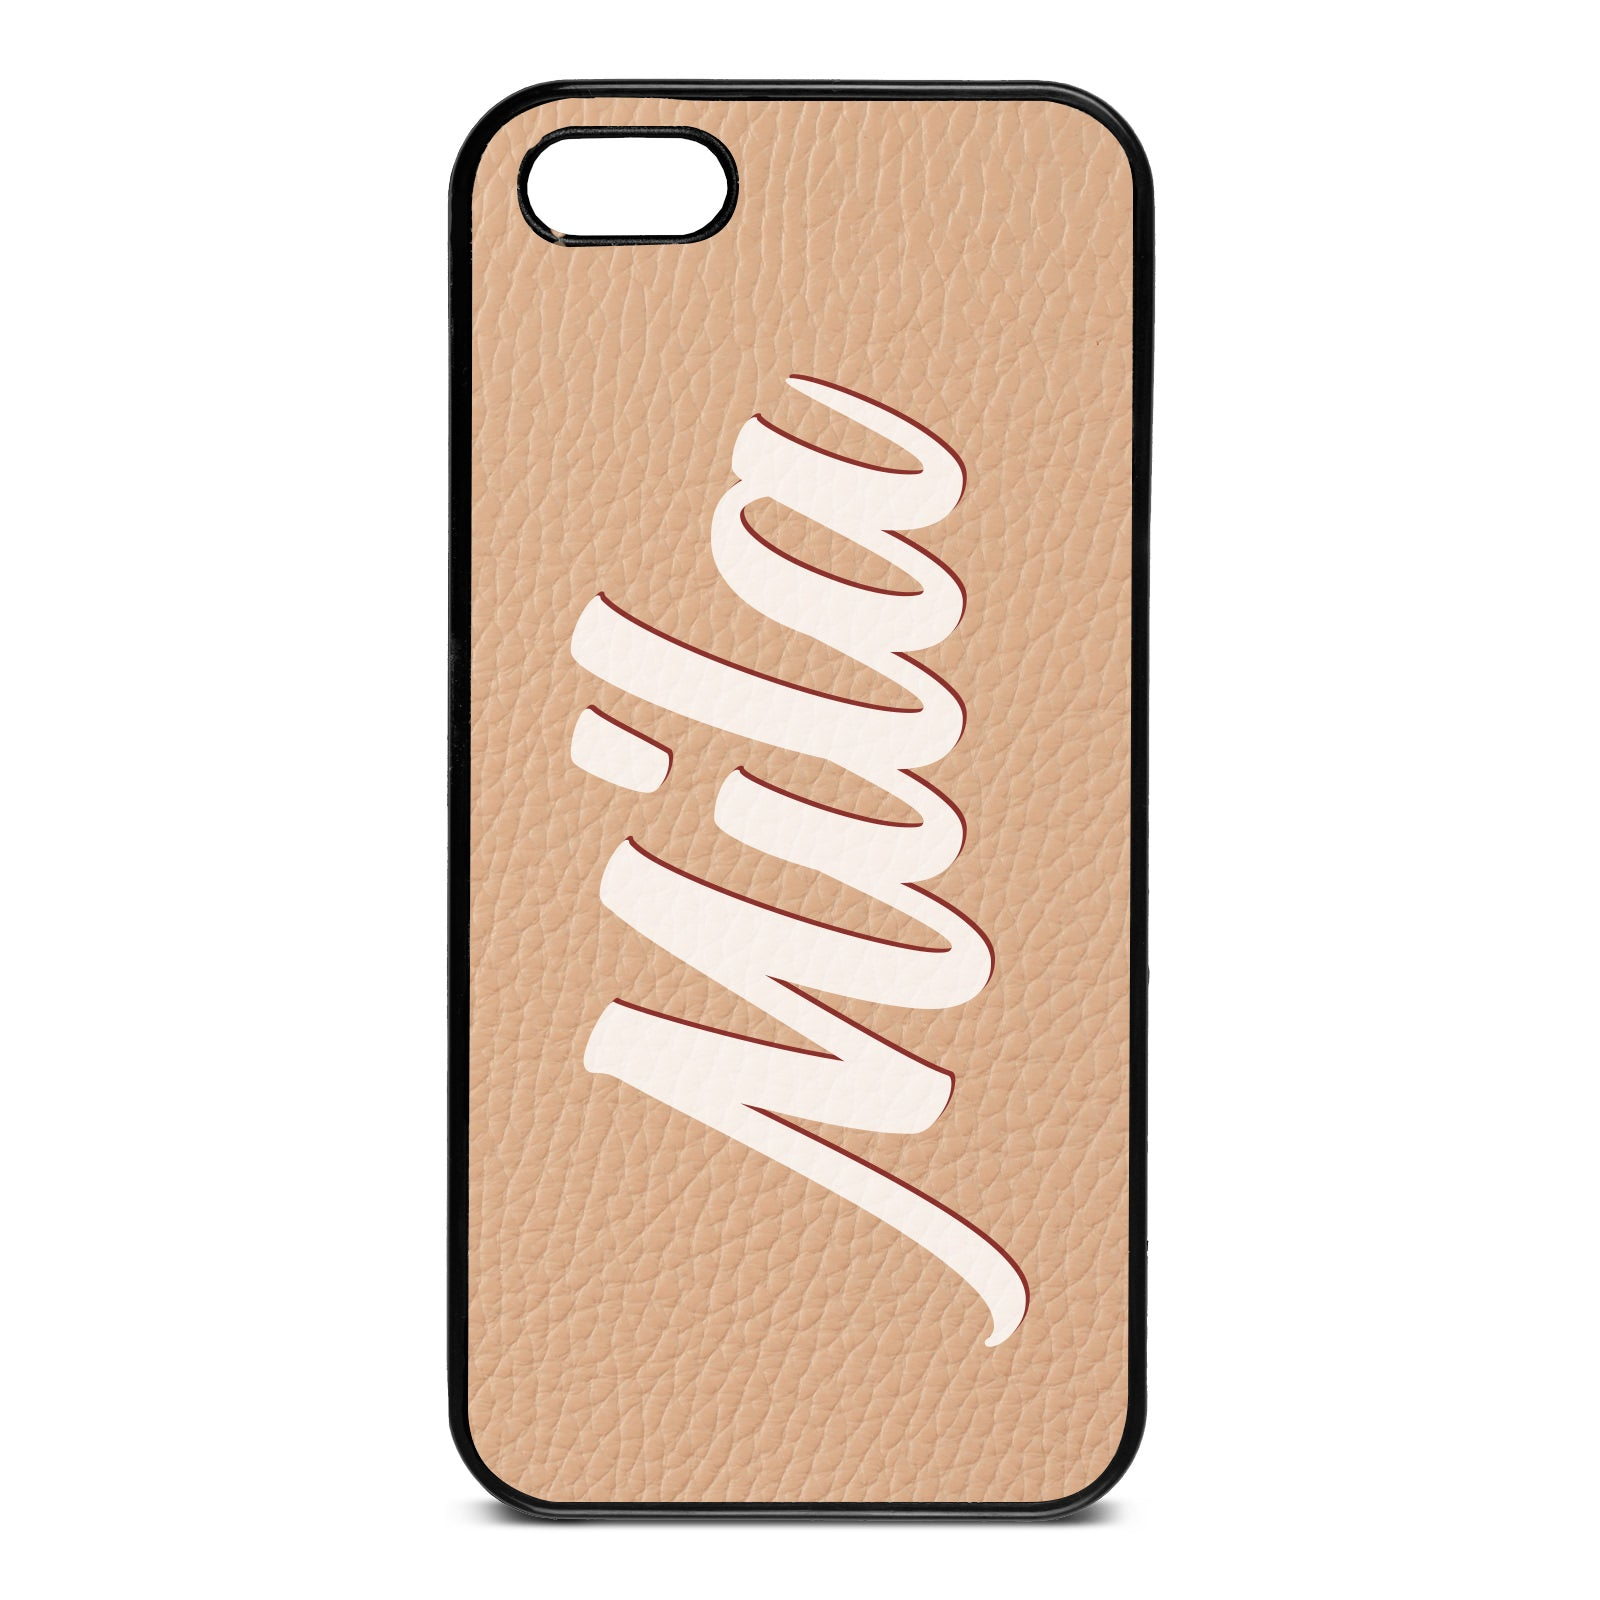 iPhone 5 Nude Pebble Leather Case